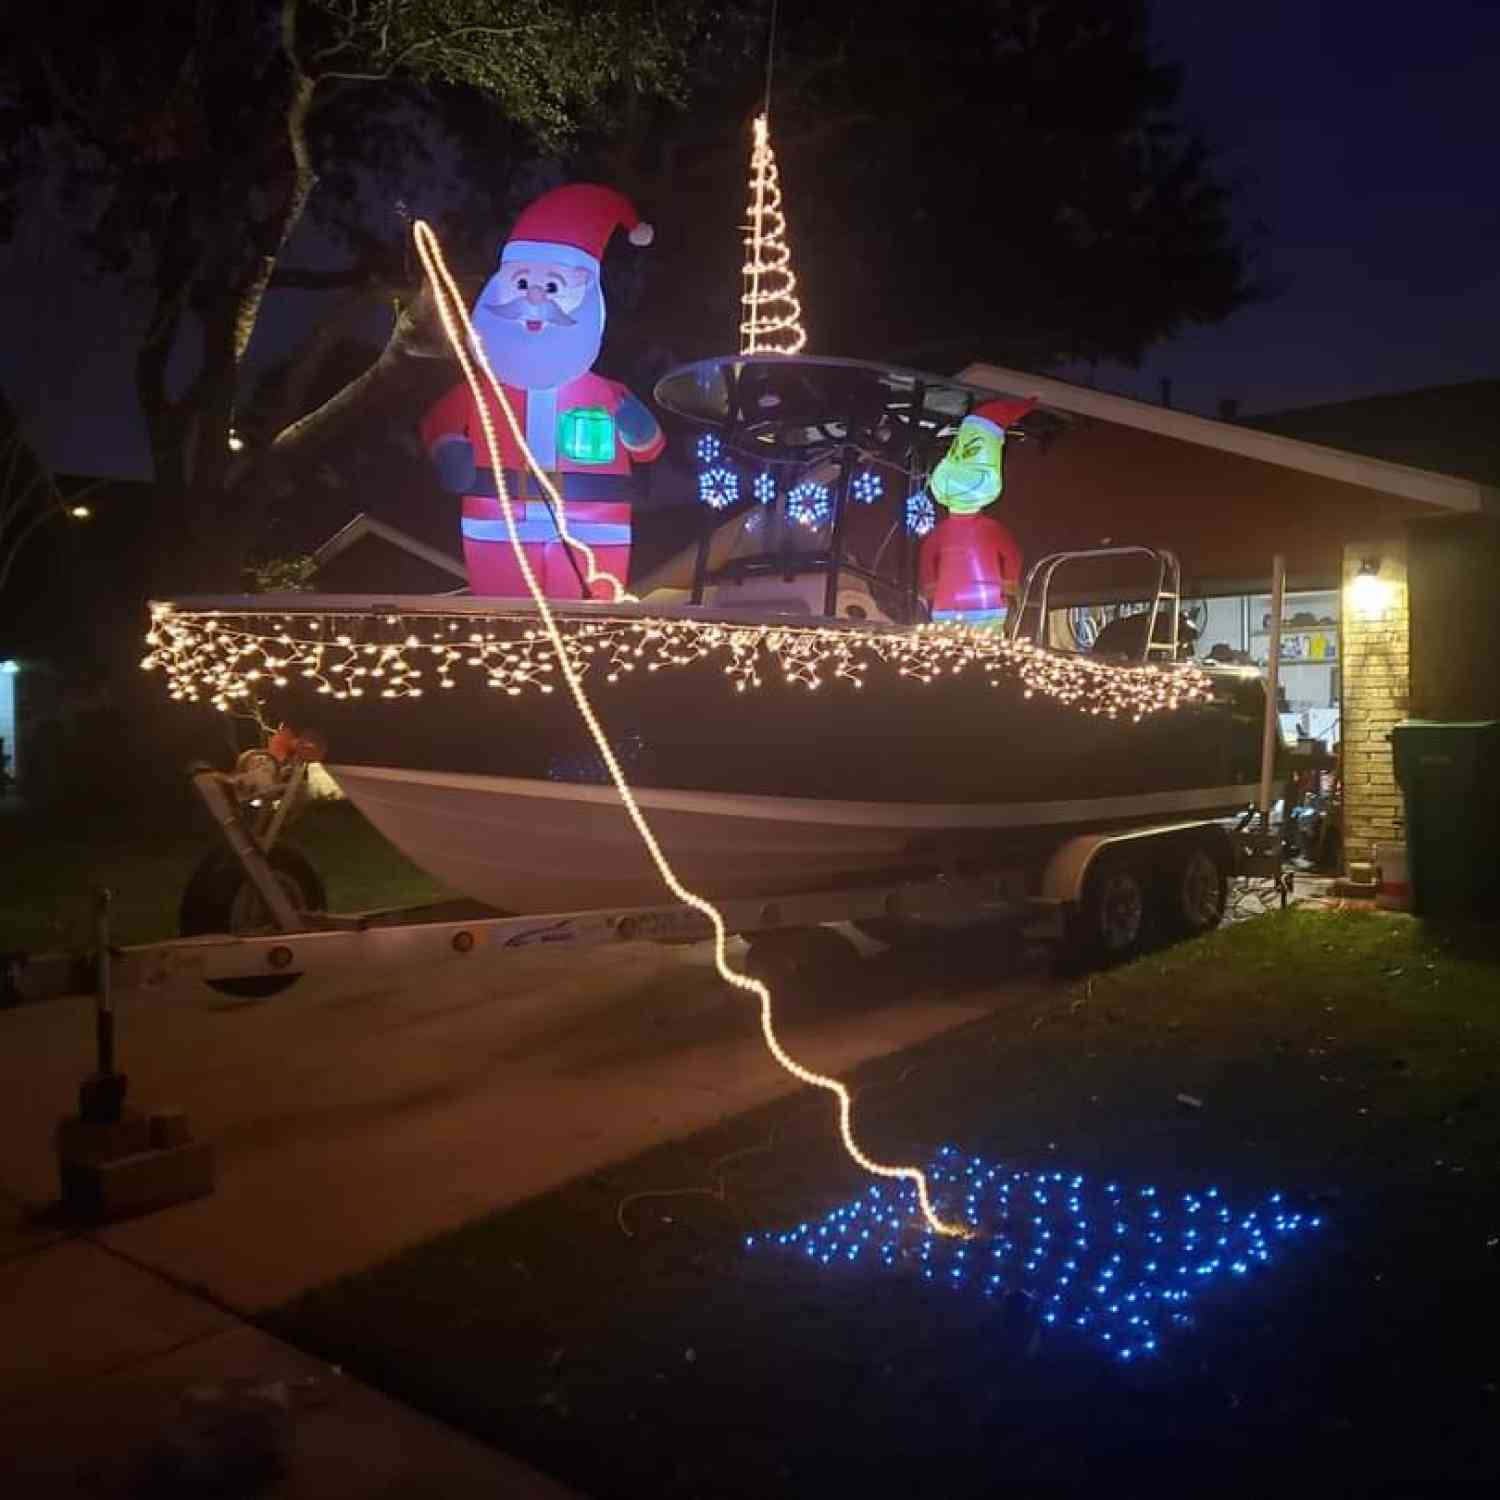 This is my boat during Christmas time. Santa is trying to catch a fish